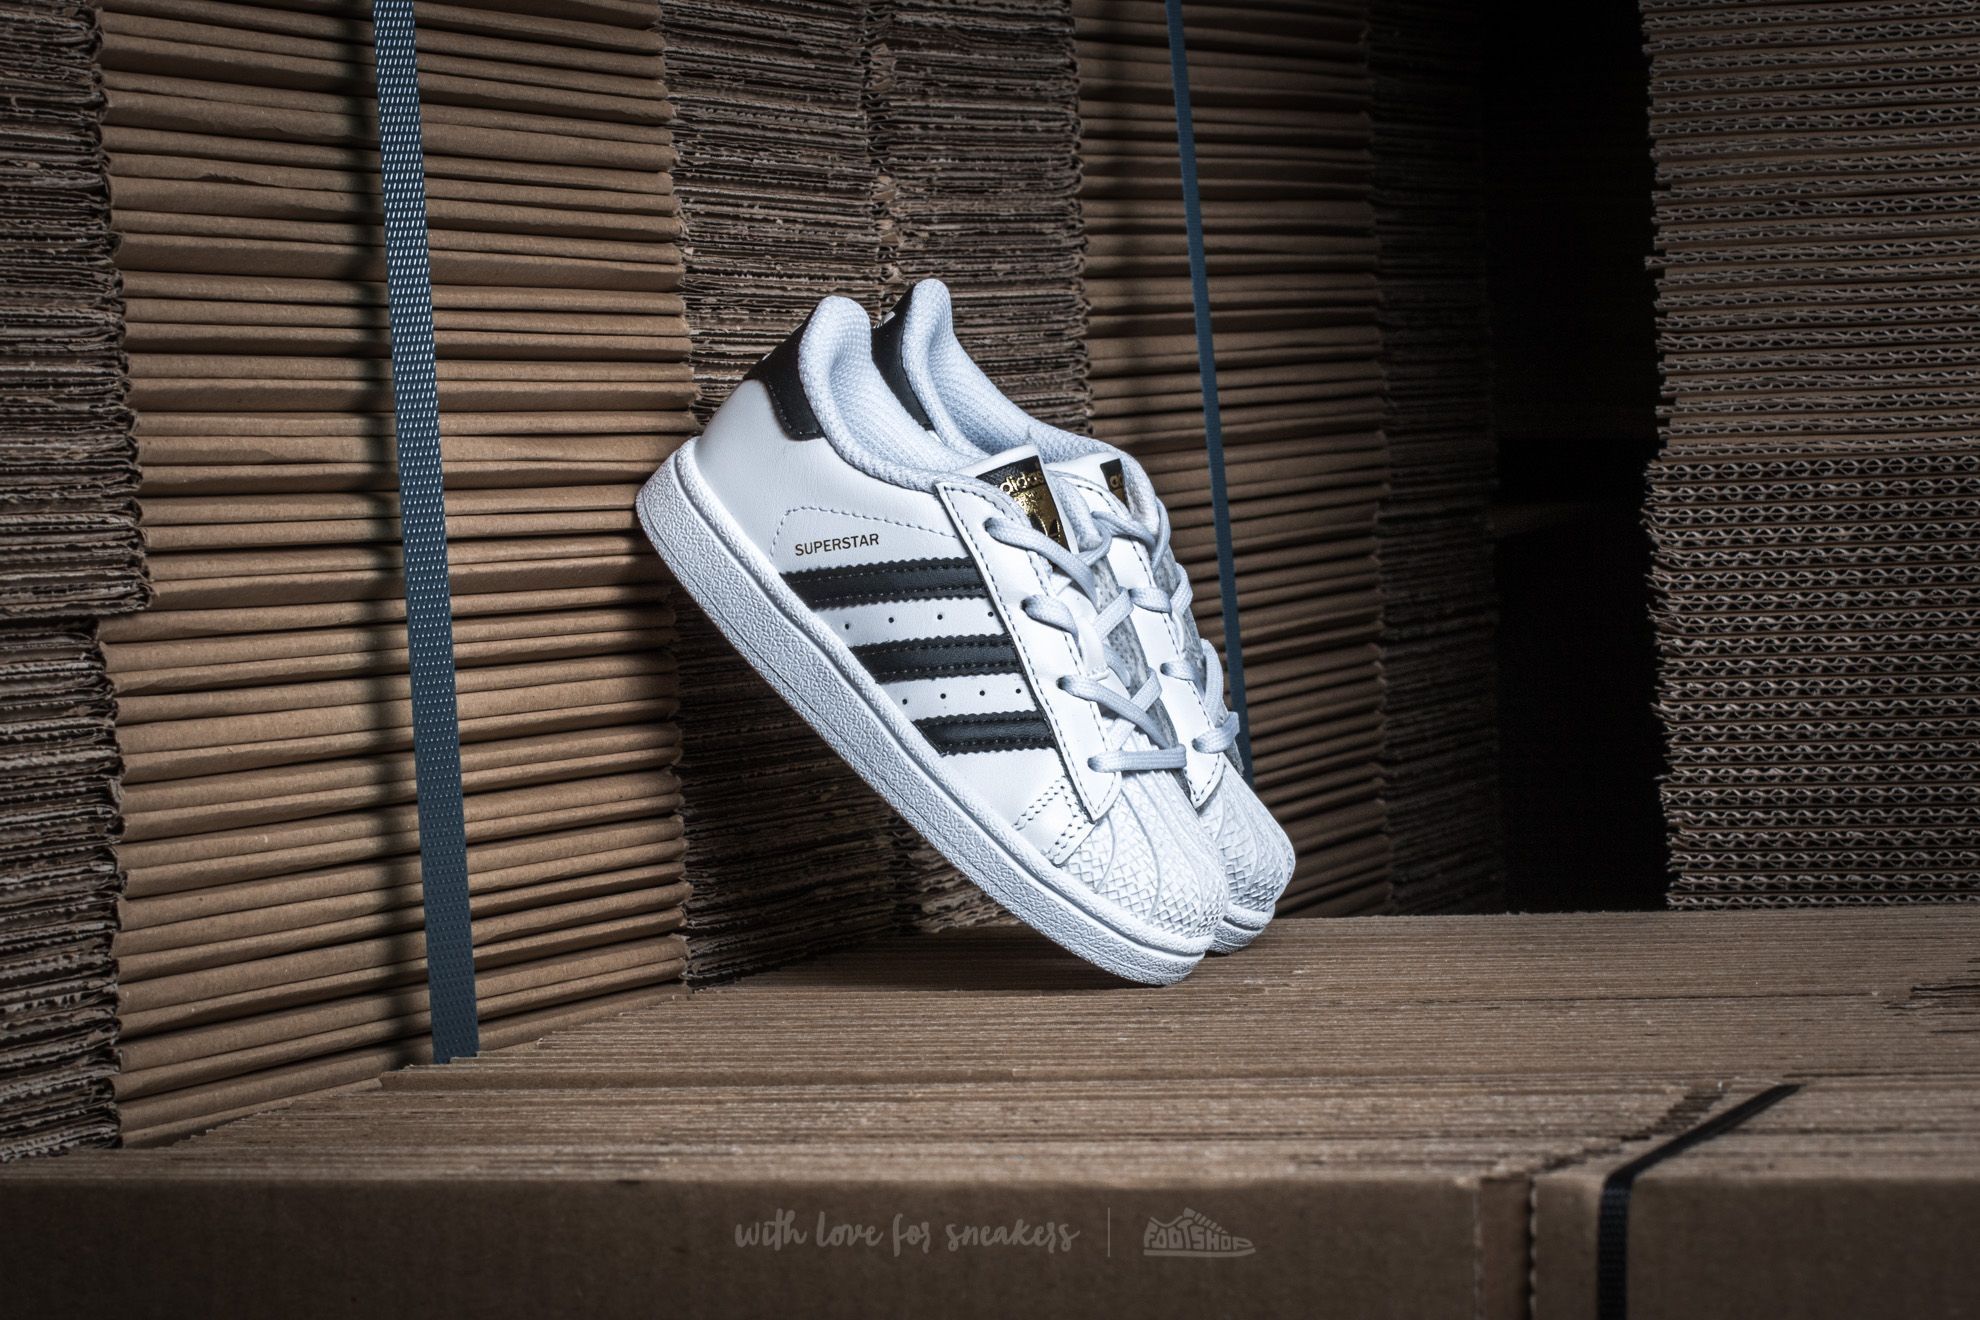 adidas Superstar I Ftw White/ Core Black/ Ftw White - 12853